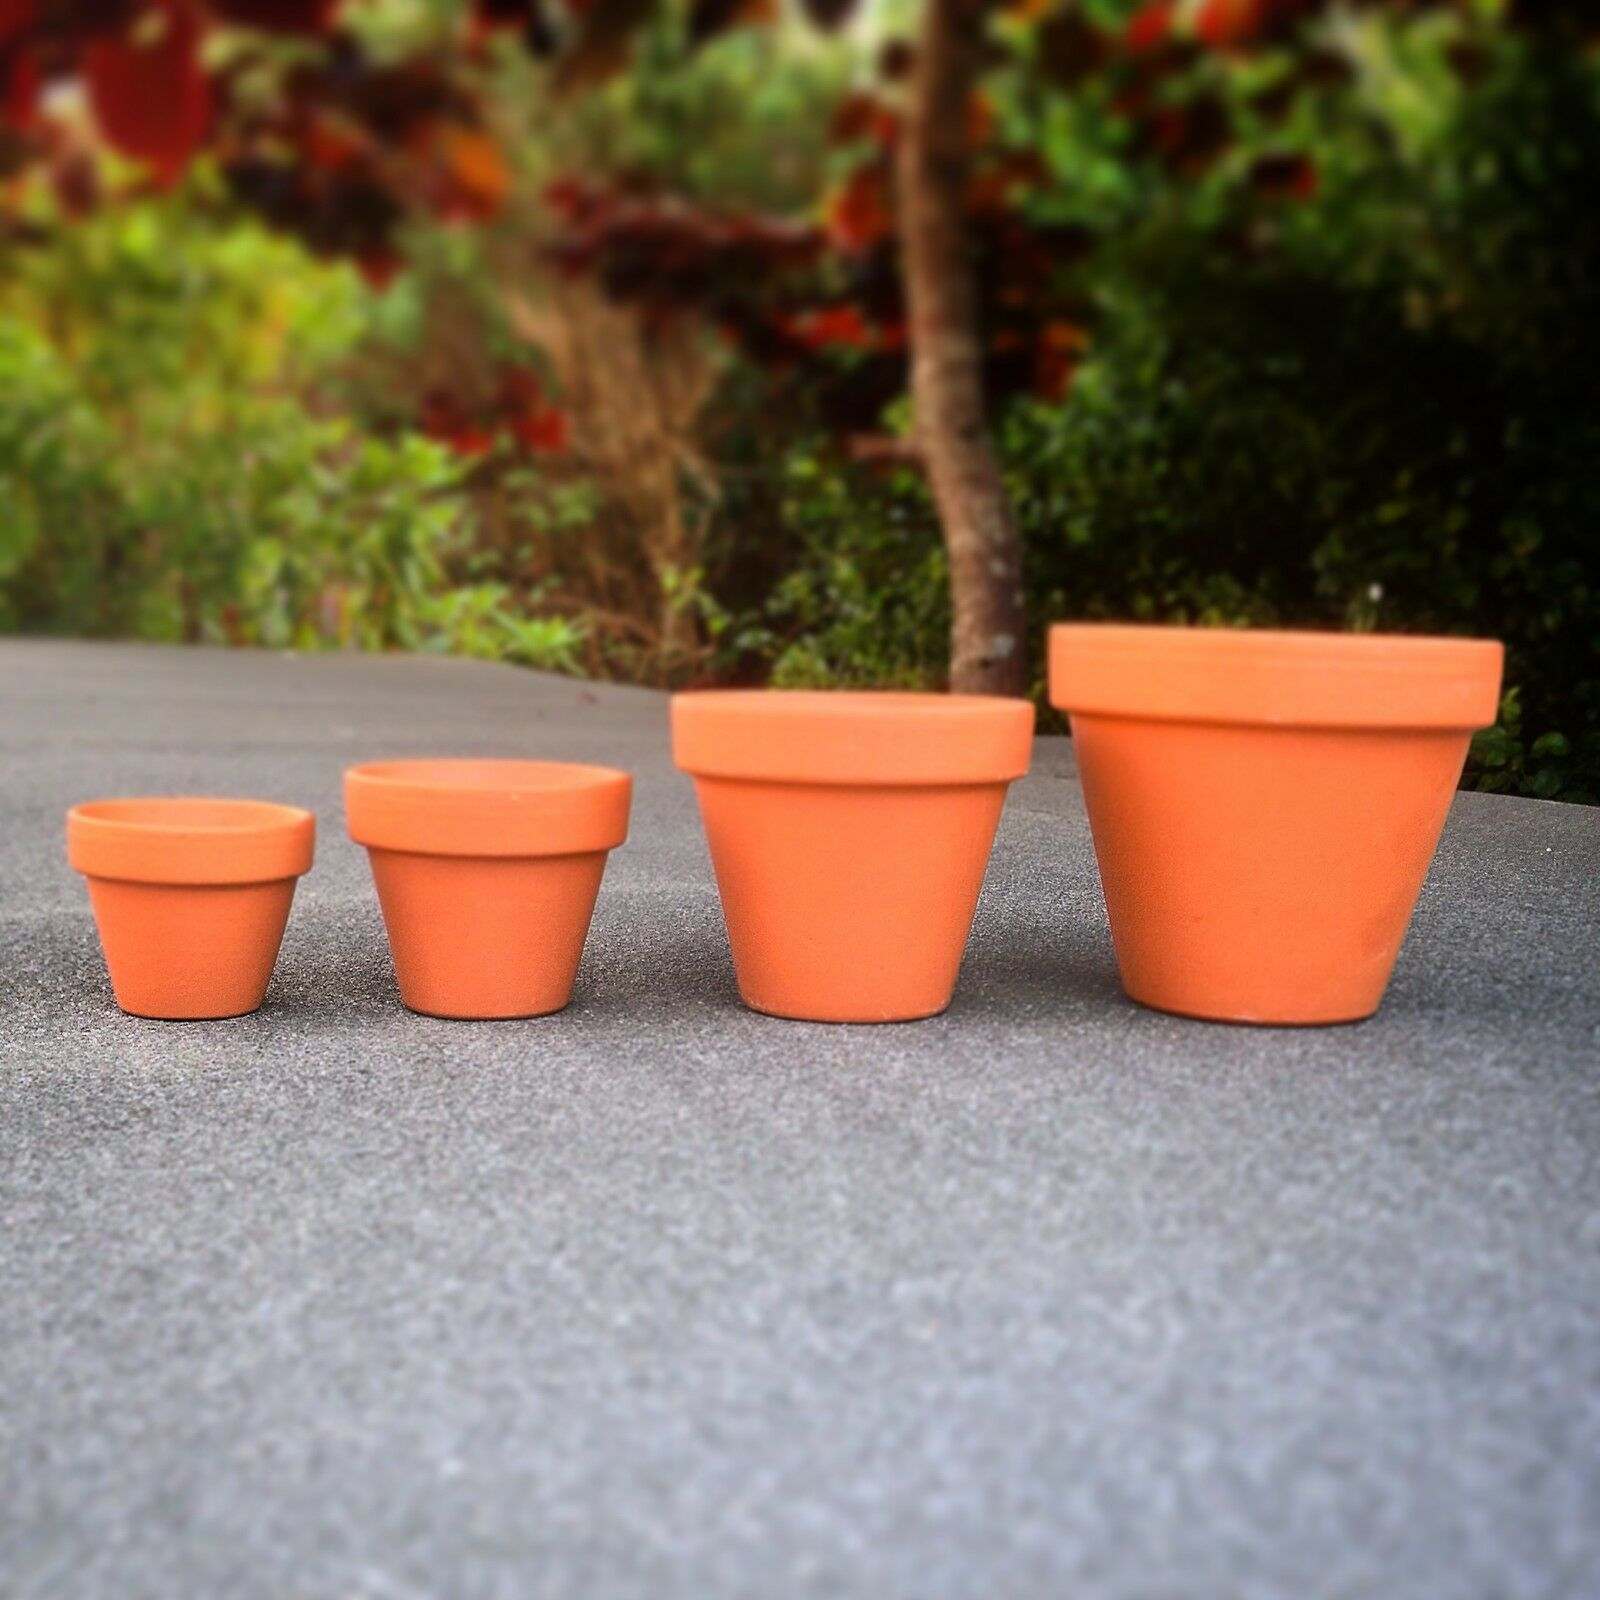 Mini Plant Pots Bulk 10 Mini Terracotta Plant Pots 4 3cm Diameter Great Value